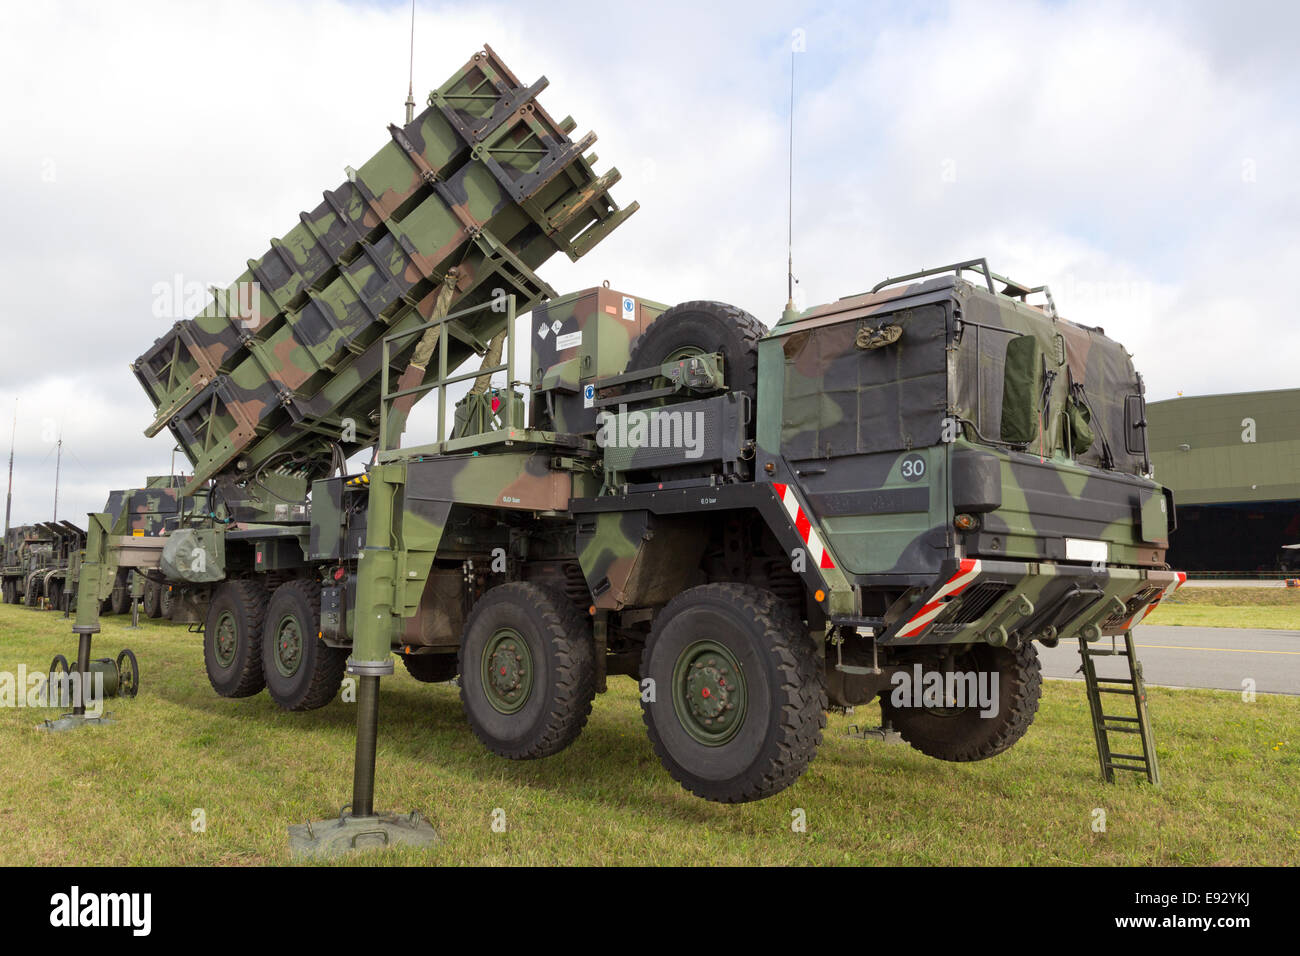 German Patriot Anti aircraft missile system - Stock Image